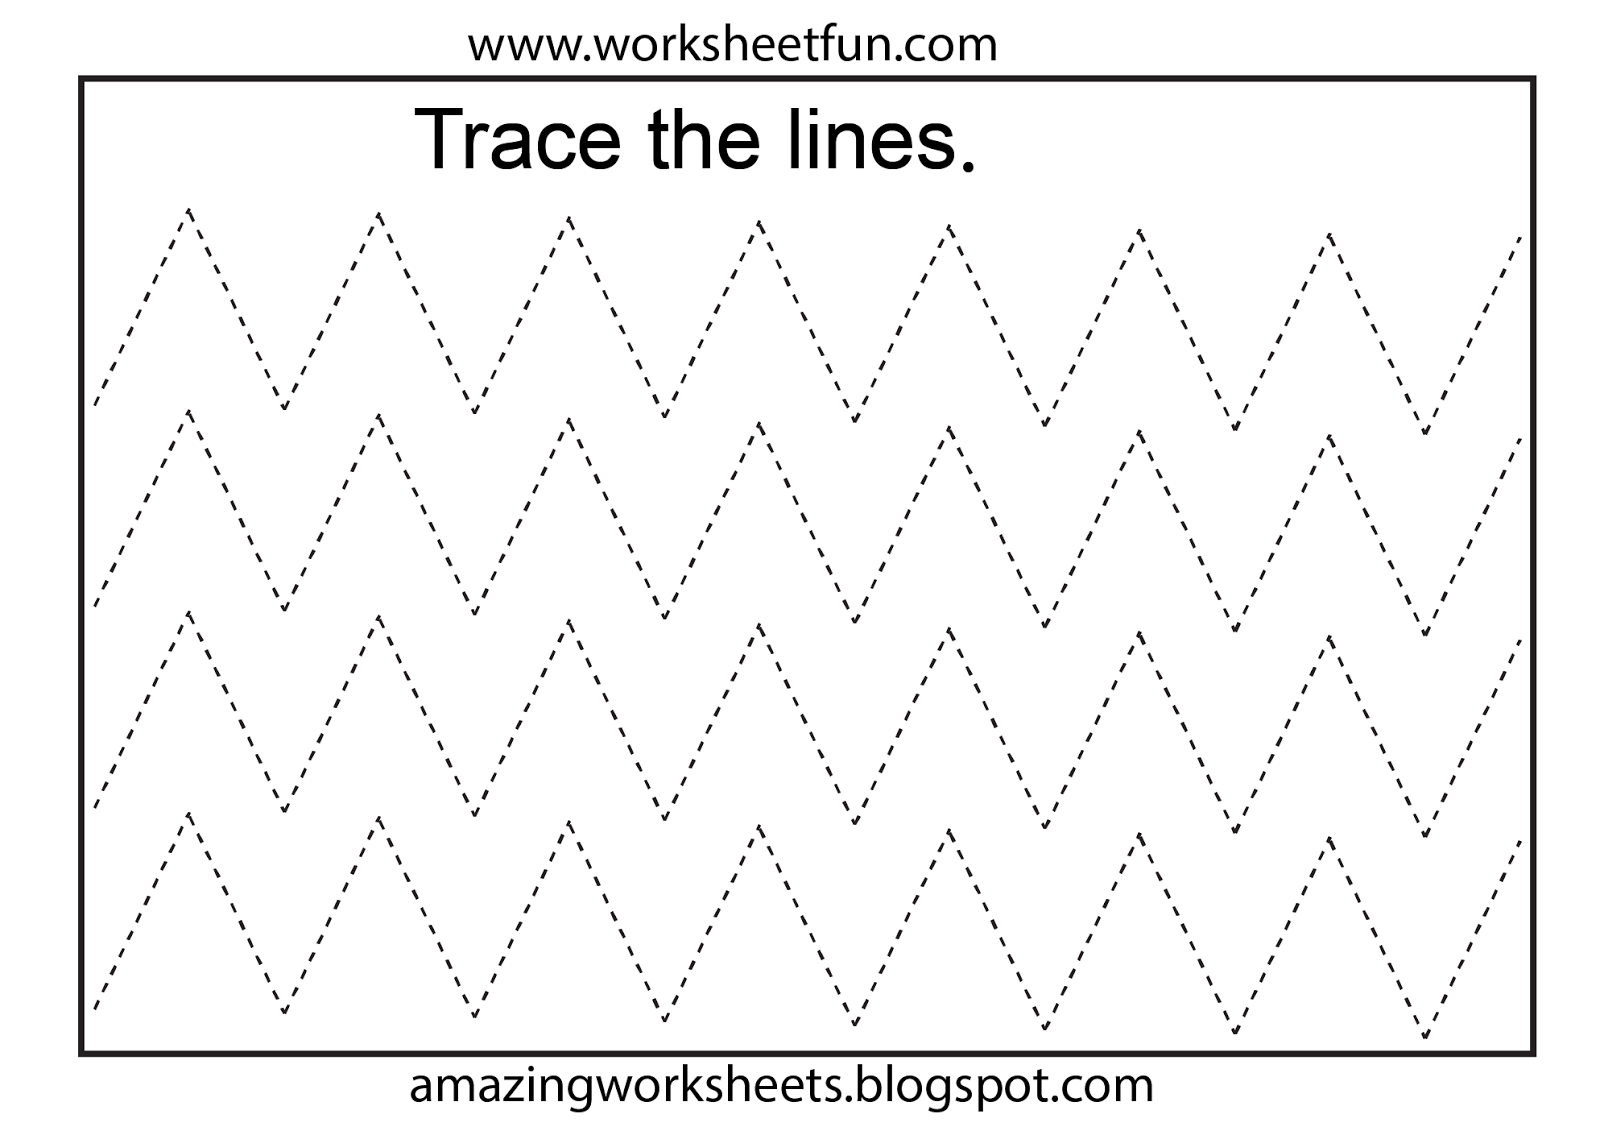 Worksheets Pre-k Worksheets Printables free printable tracing worksheets preschool line cutting fine motor